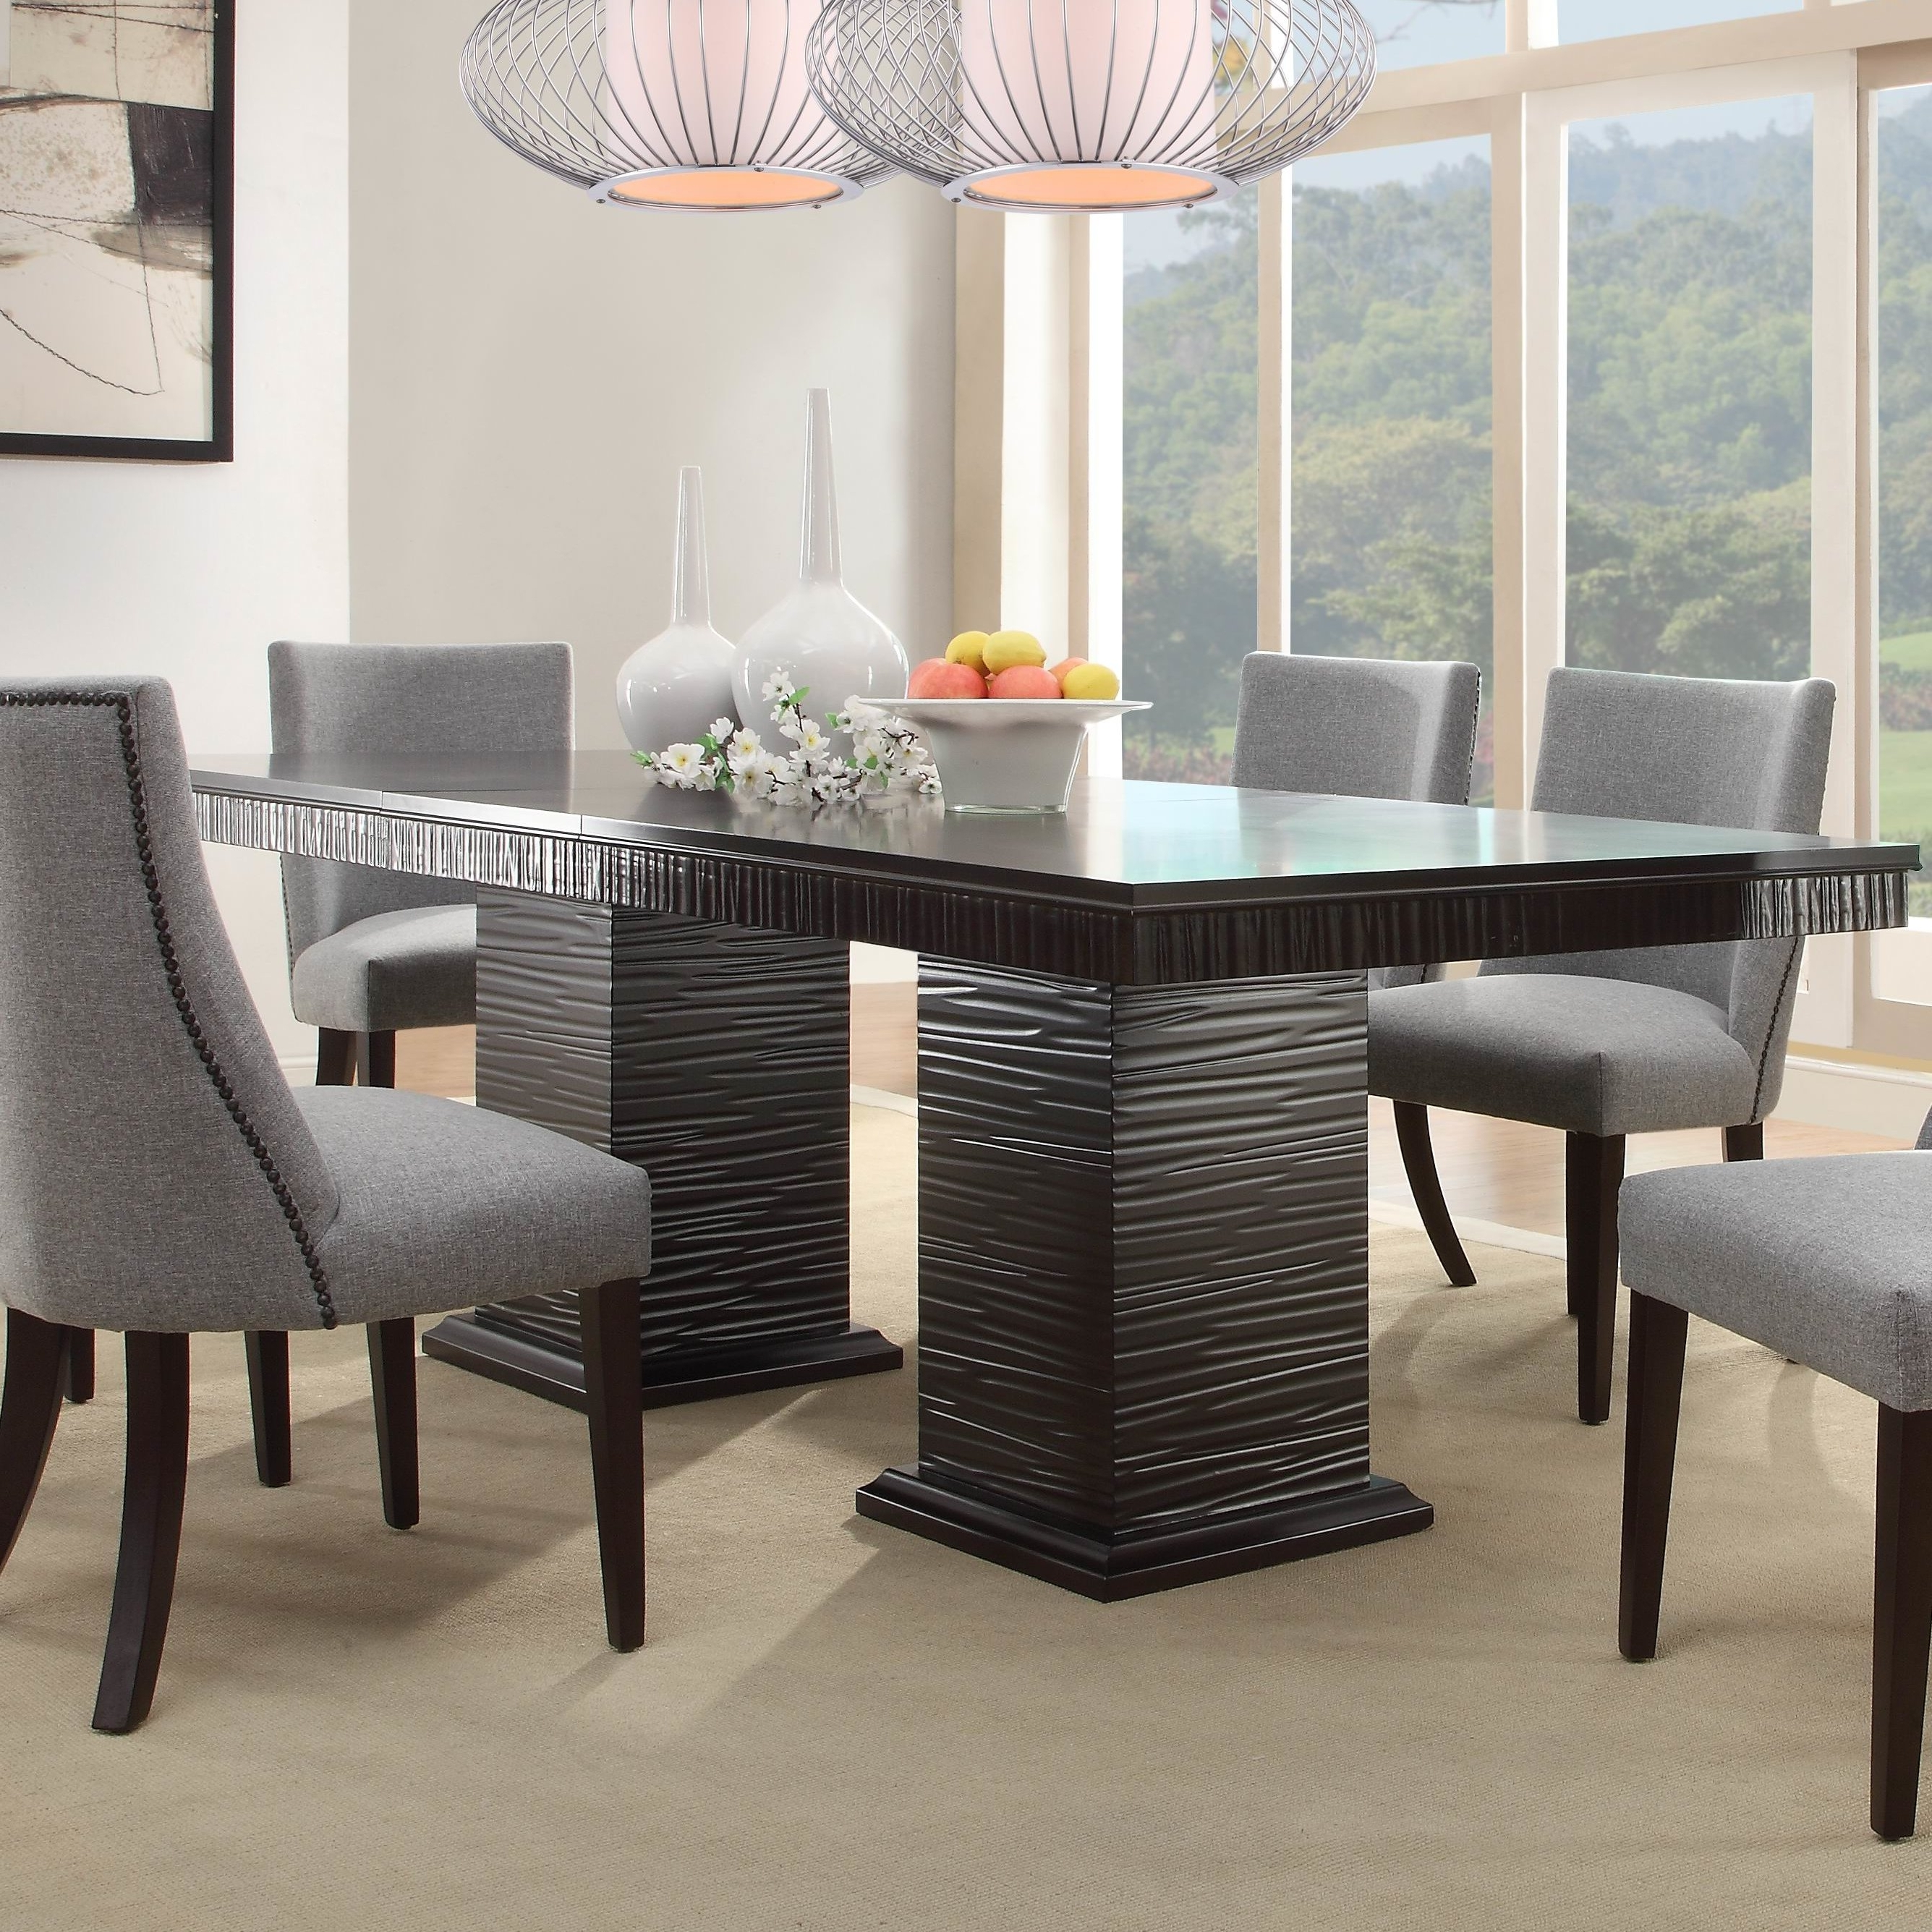 2017 Cadogan Extendable Dining Table With Regard To Extendable Dining Sets (View 12 of 25)